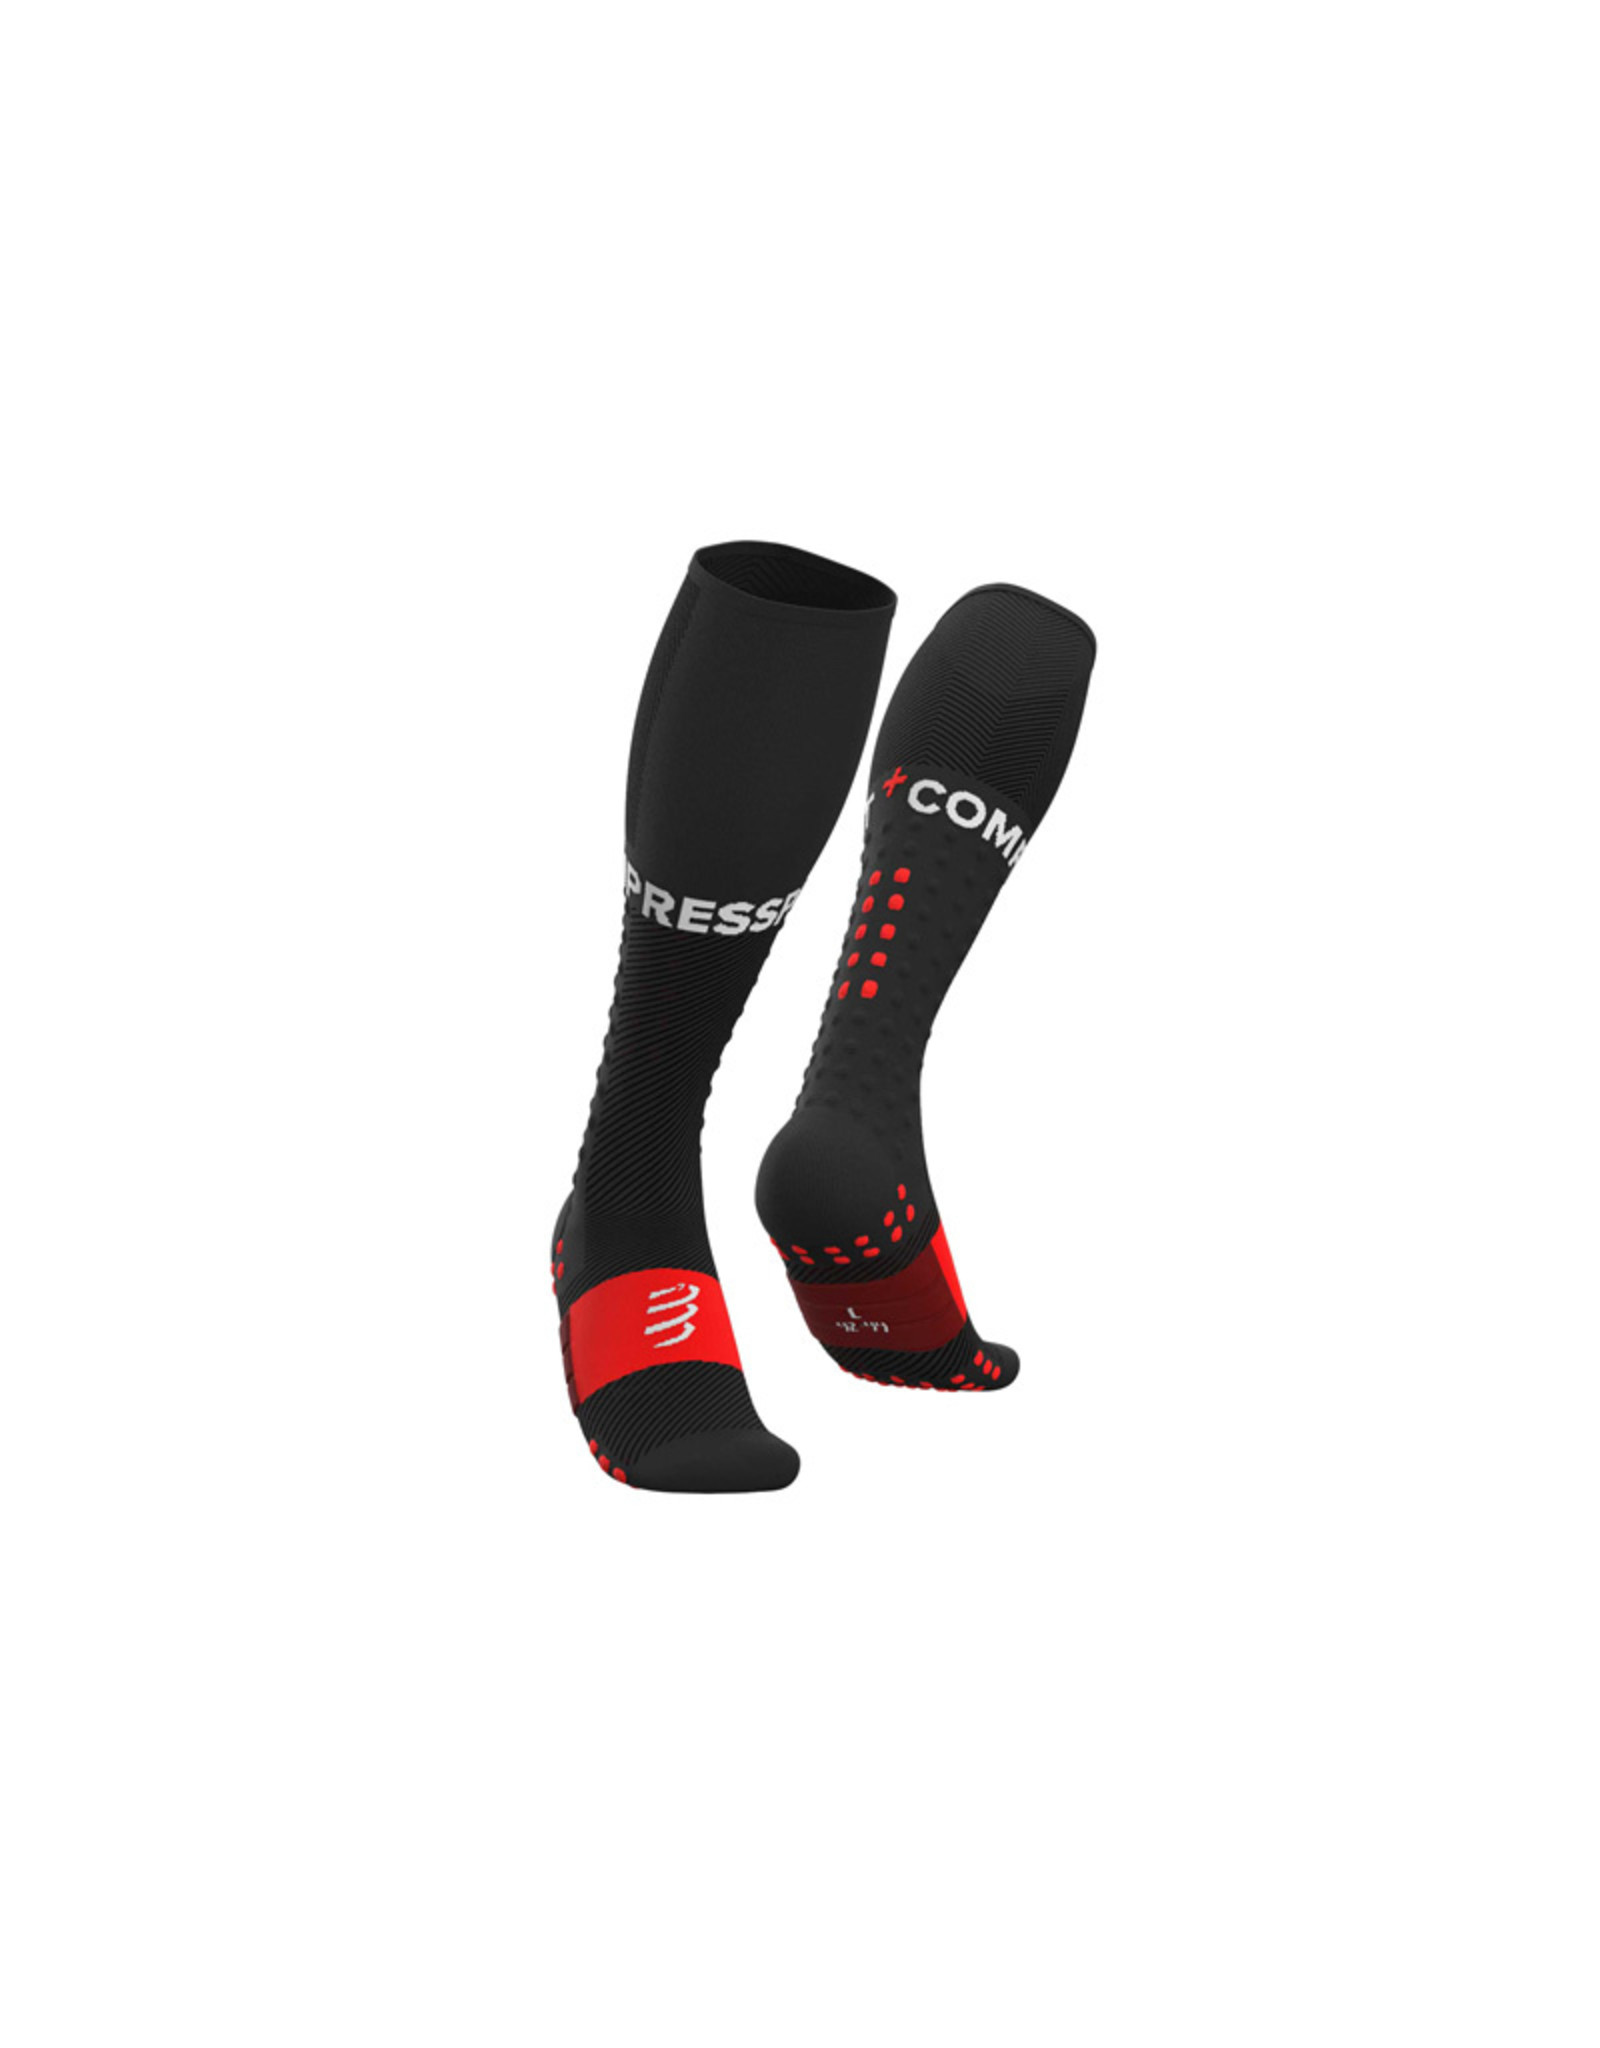 Compressport Full Socks Run Chaussettes De Compression - Noir